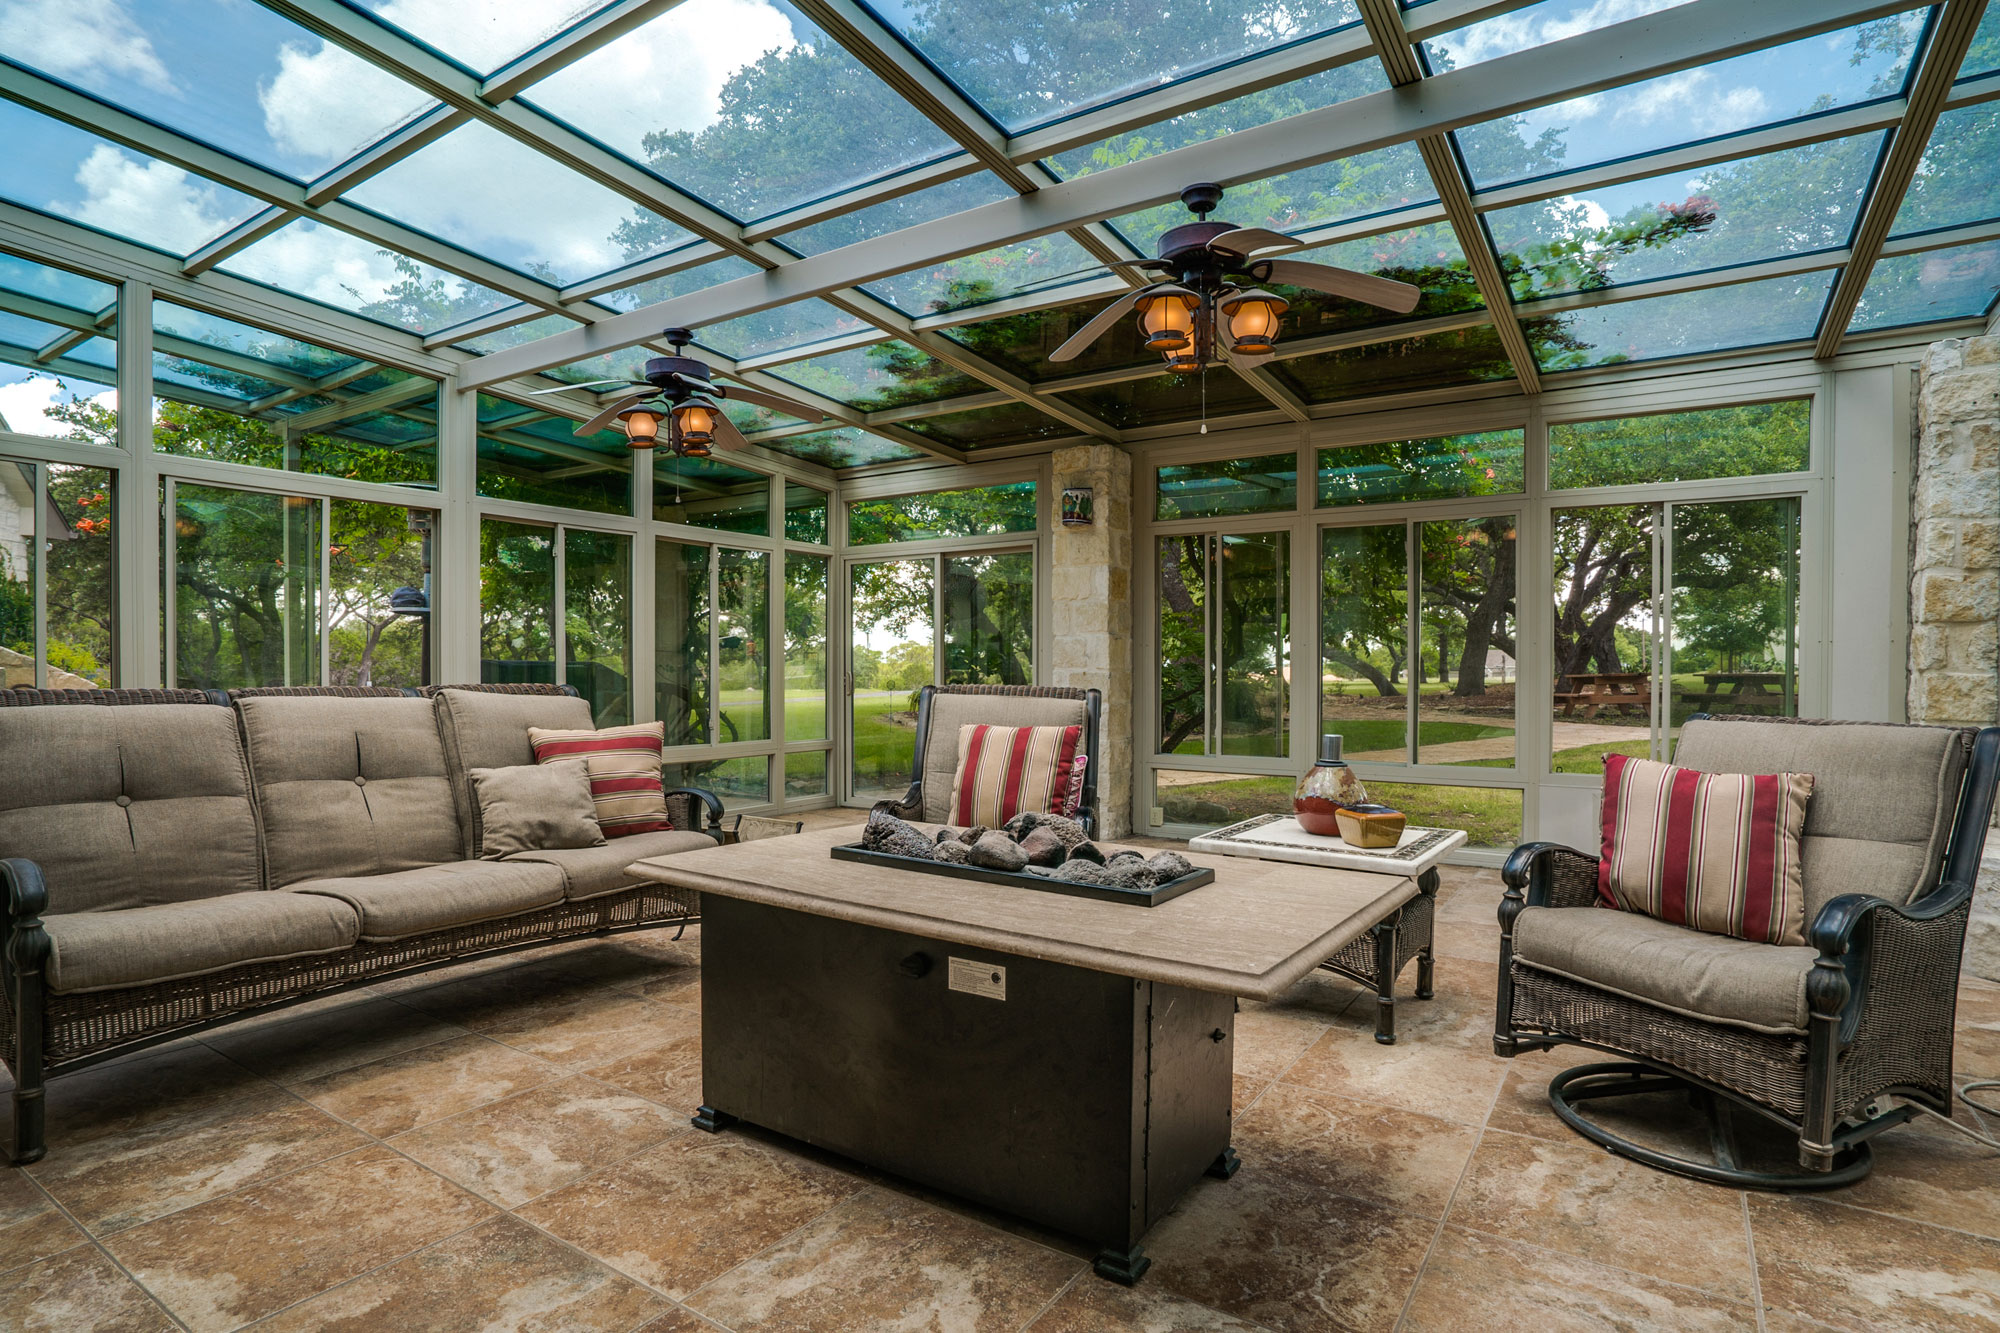 This 116-acre ranch estate outside San Antonio was designed to enjoy the beauty of Texas Hill Country; the glass-enclosed sunroom is a tranquil year-round escape with sliding glass doors to let in the summer breeze and a fire pit to warm the winter chill.